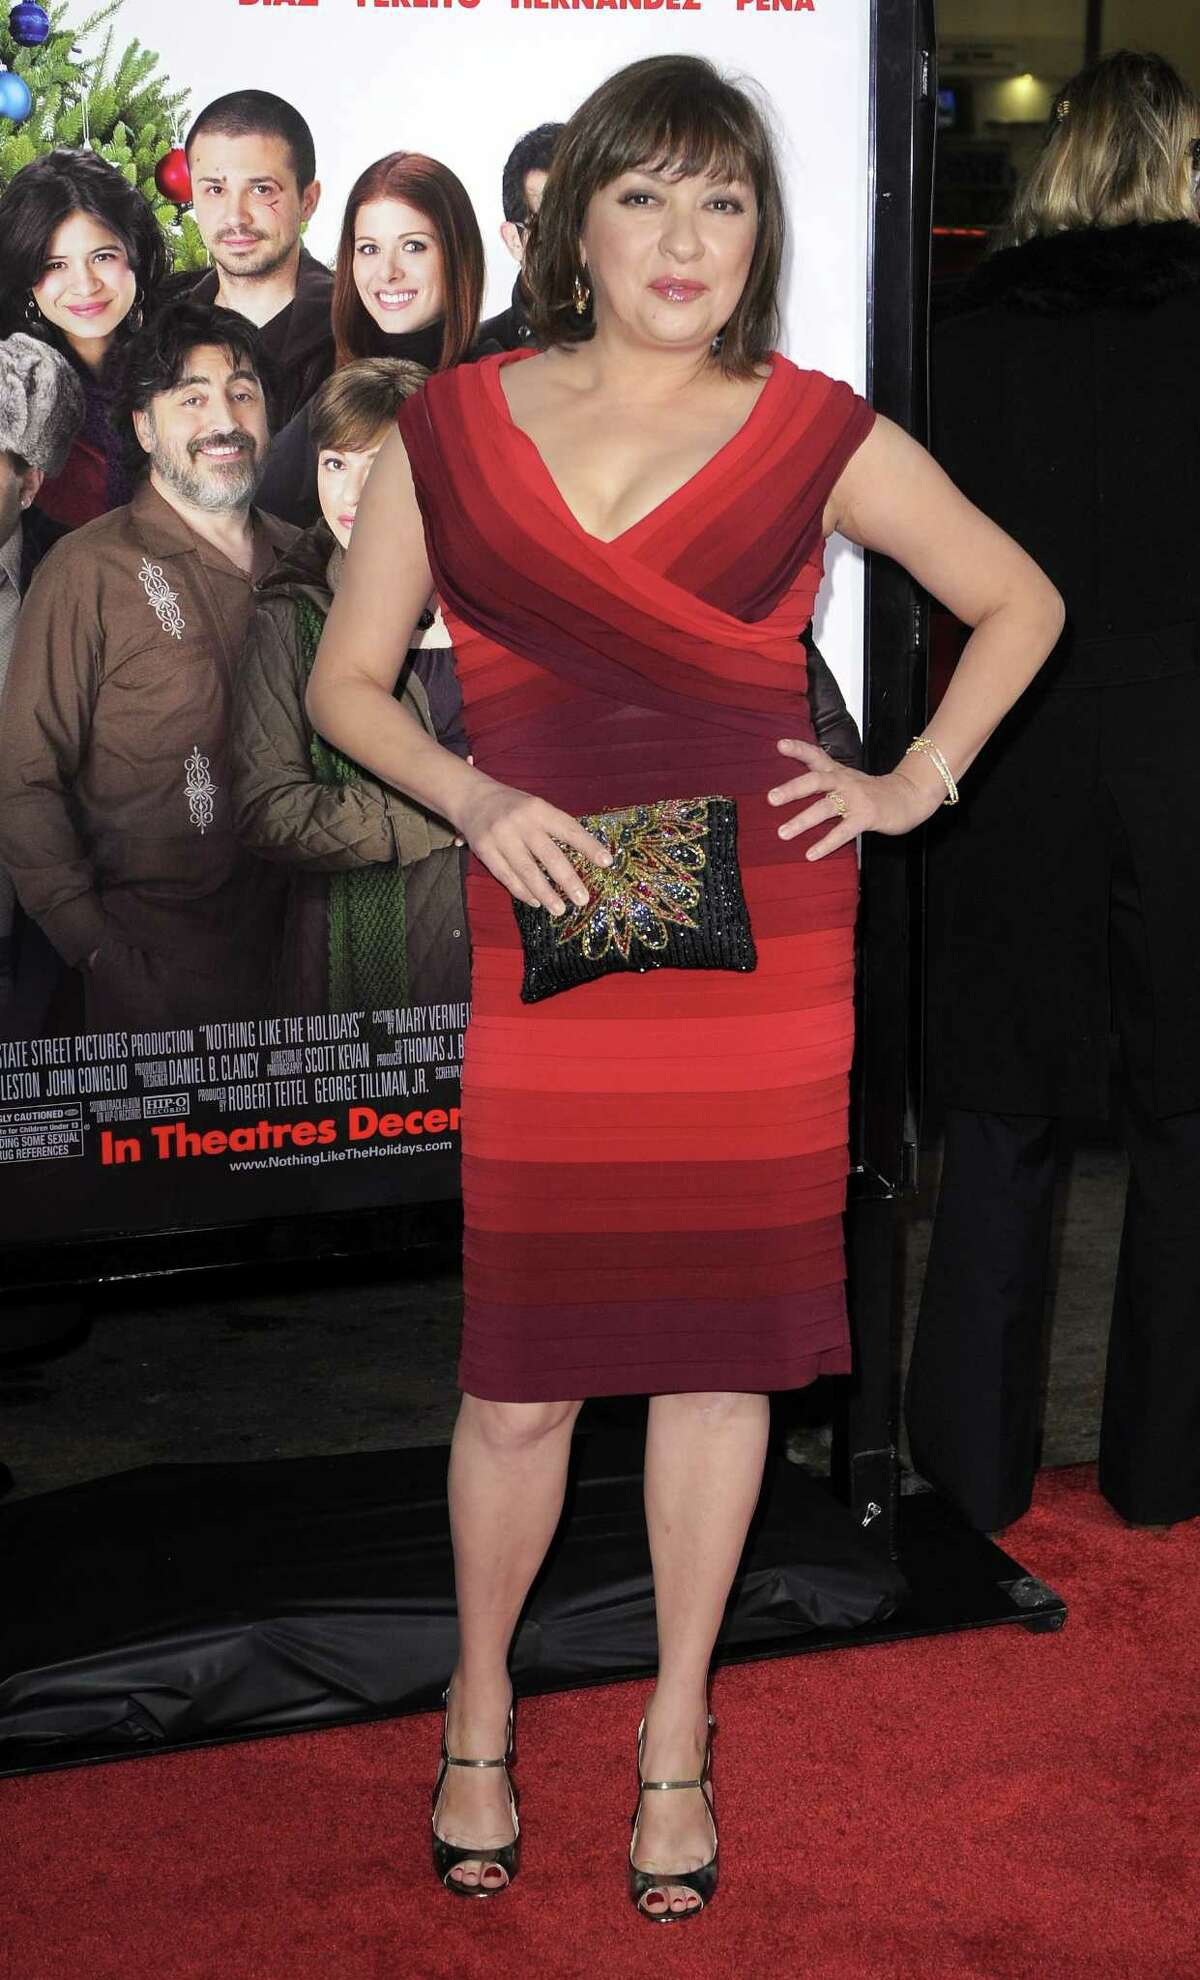 """FILE - In this Dec. 3, 2008 file photo, Elizabeth Pena poses as she arrives for the Los Angeles premiere of """"Nothing Like the Holidays,"""" in Los Angeles. The """"La Bamba"""" and """"Lone Star"""" actress Pena, 55, has died. Pena's manager, Gina Rugolo, said the actress died Tuesday, Oct. 14, 2014, in Los Angeles of natural causes after a brief illness. (AP Photo/Mark J. Terrill, file)"""